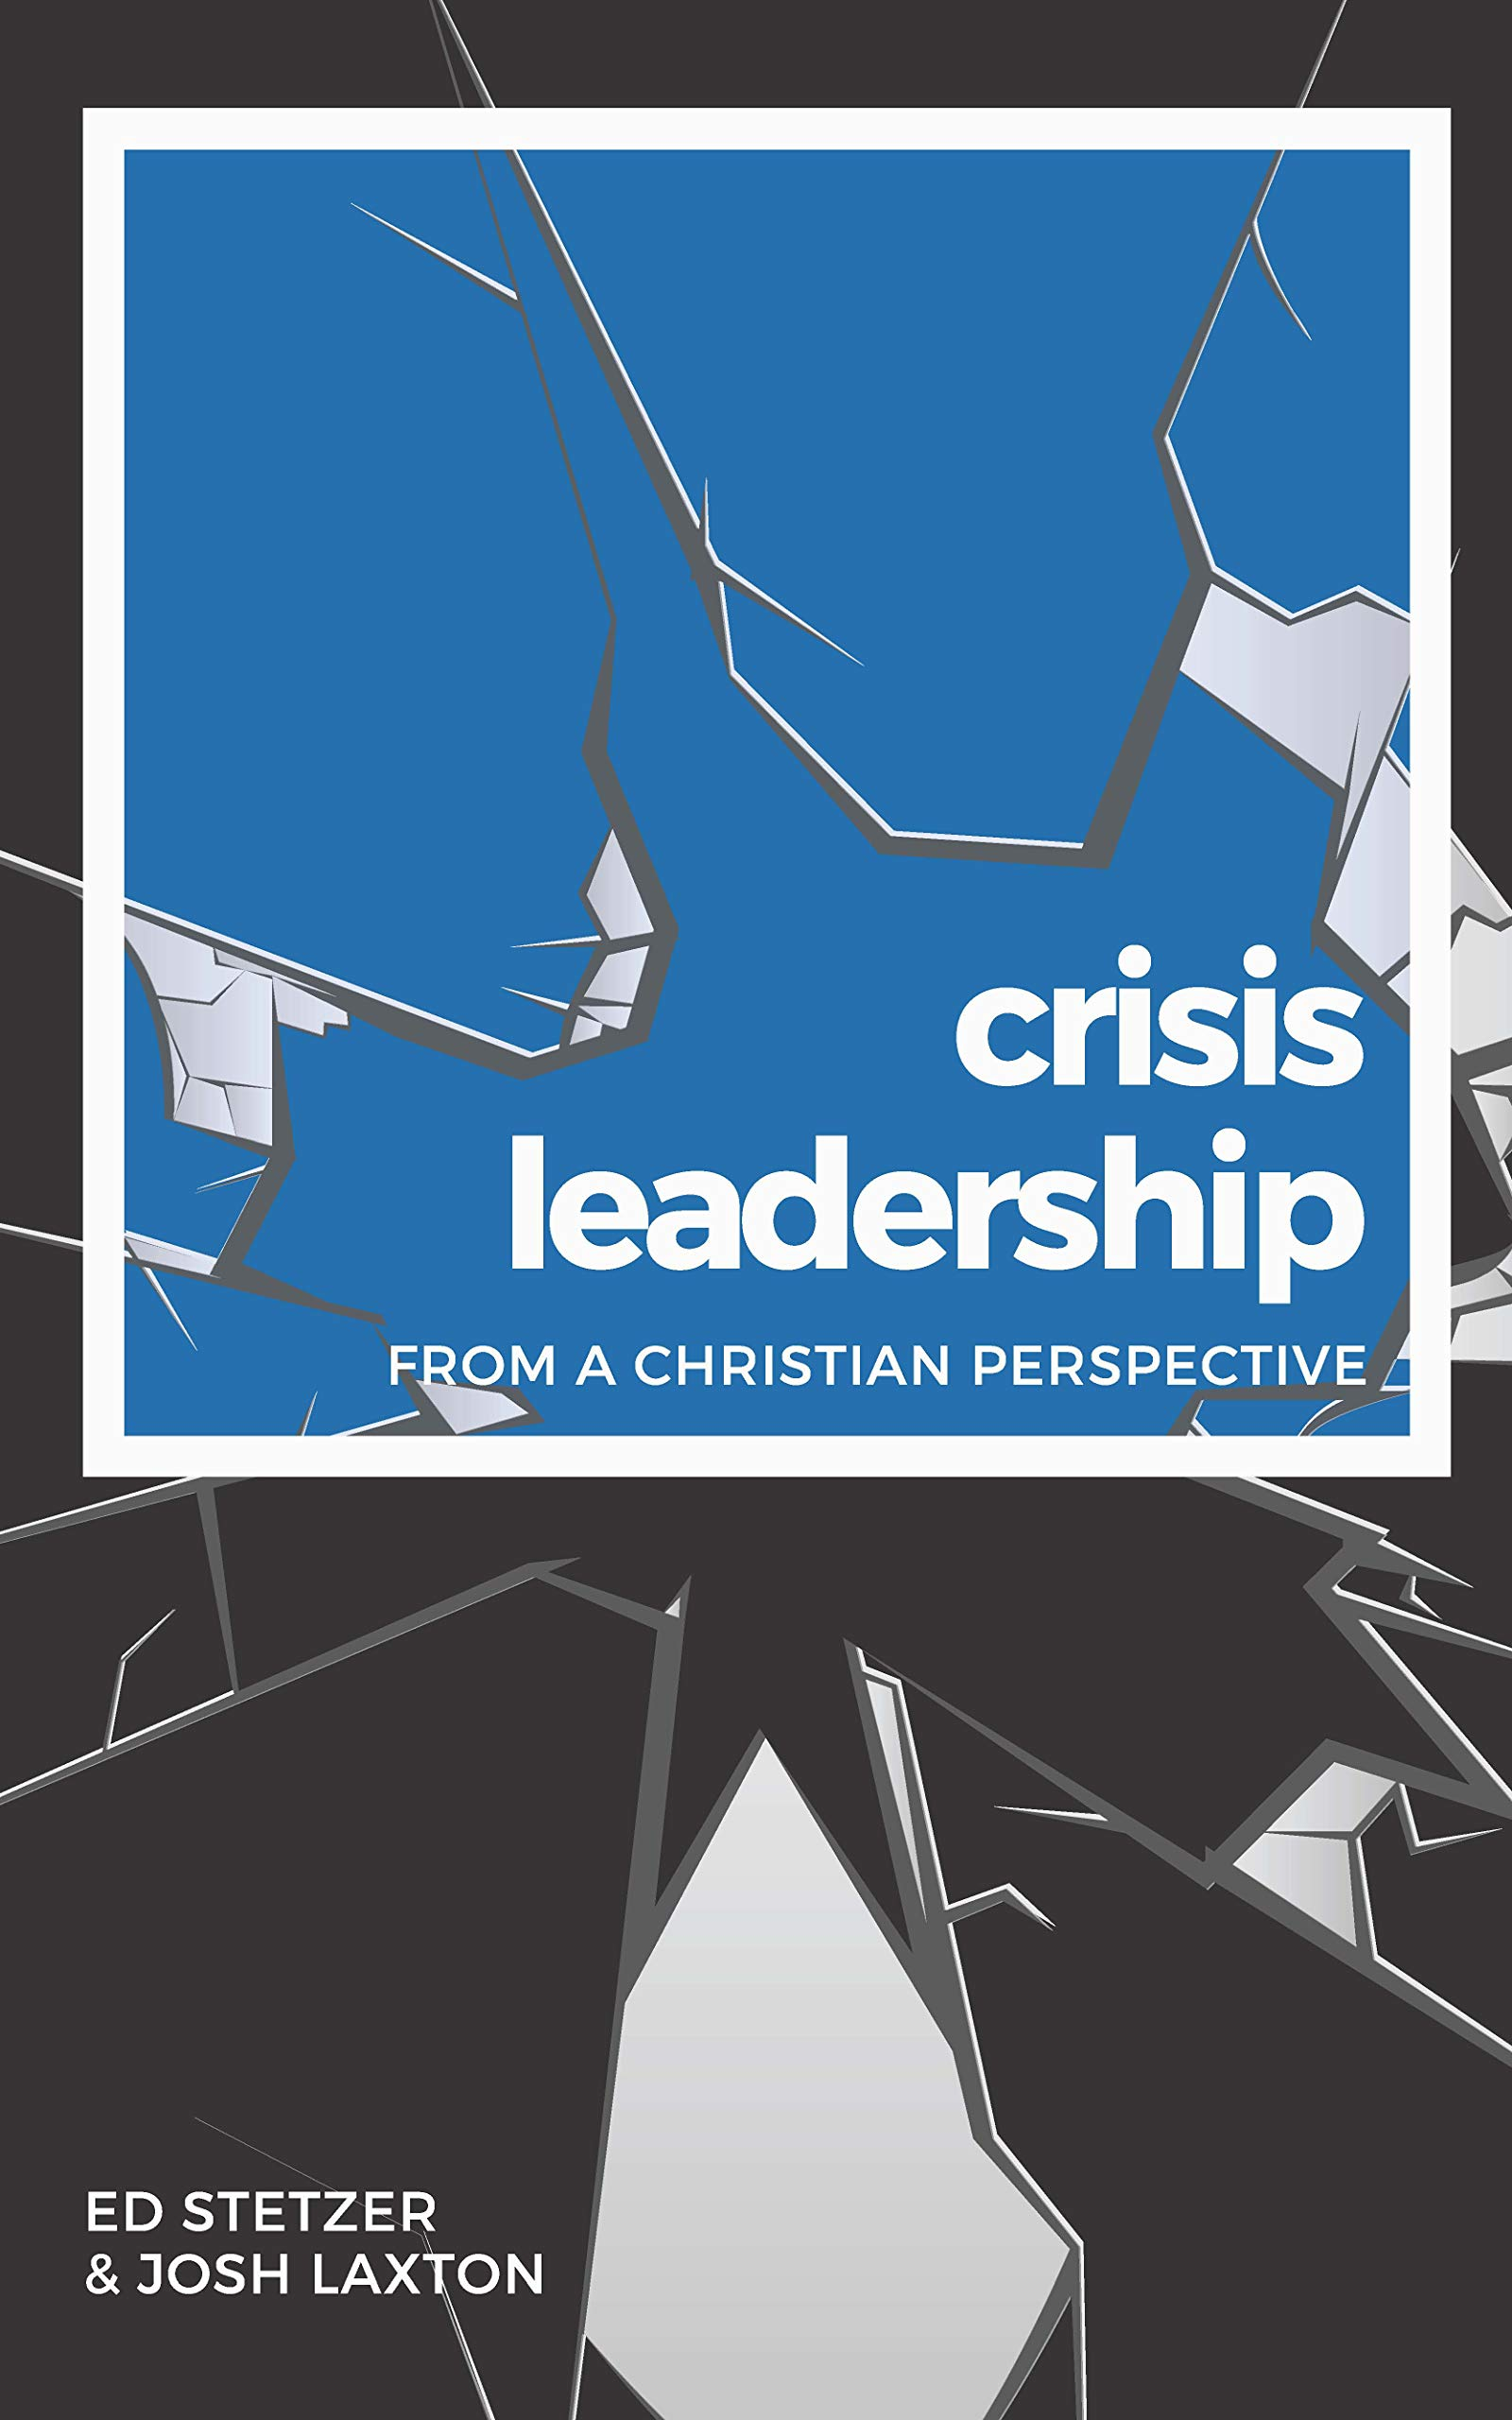 Crisis Leadership From a Christian Perspective